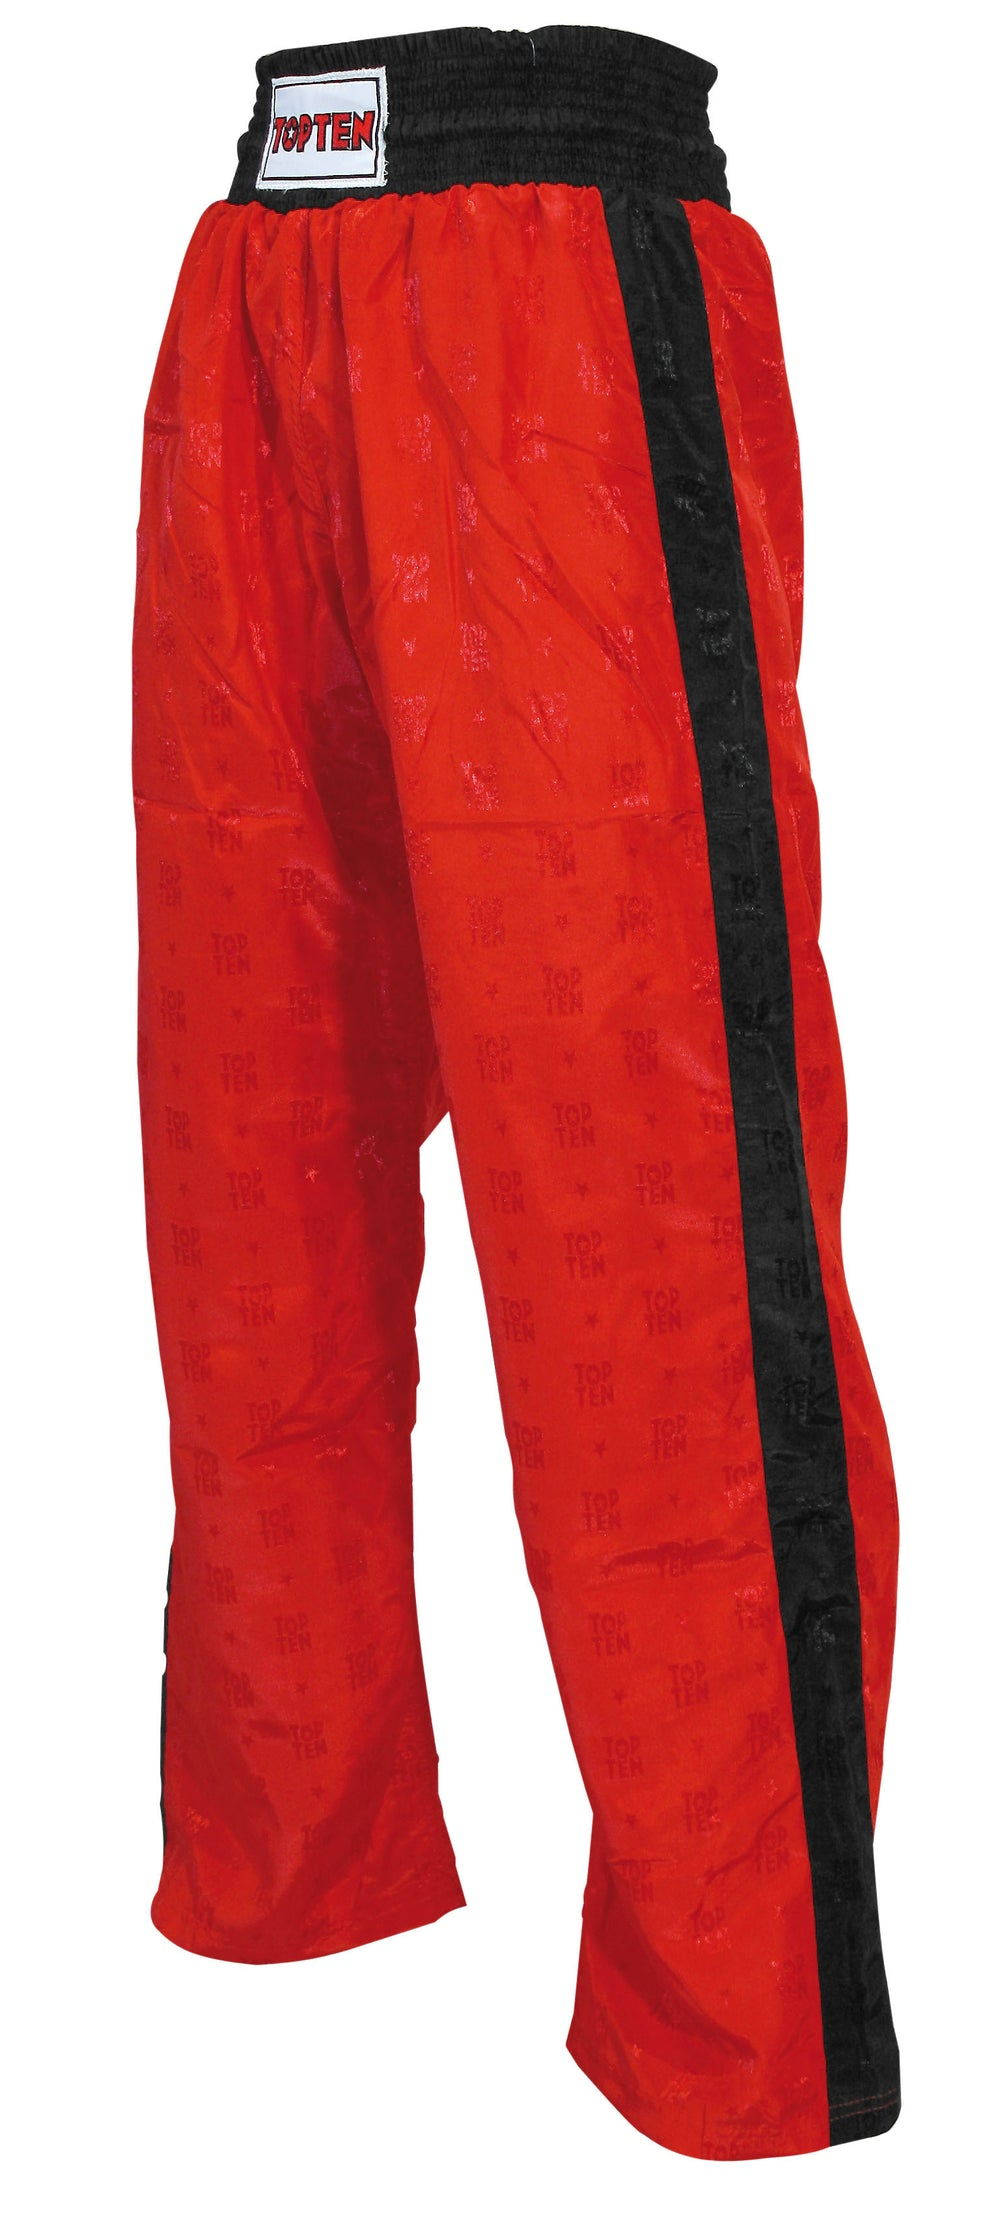 Top Ten Kickboxing Pants Red with Black Stripe